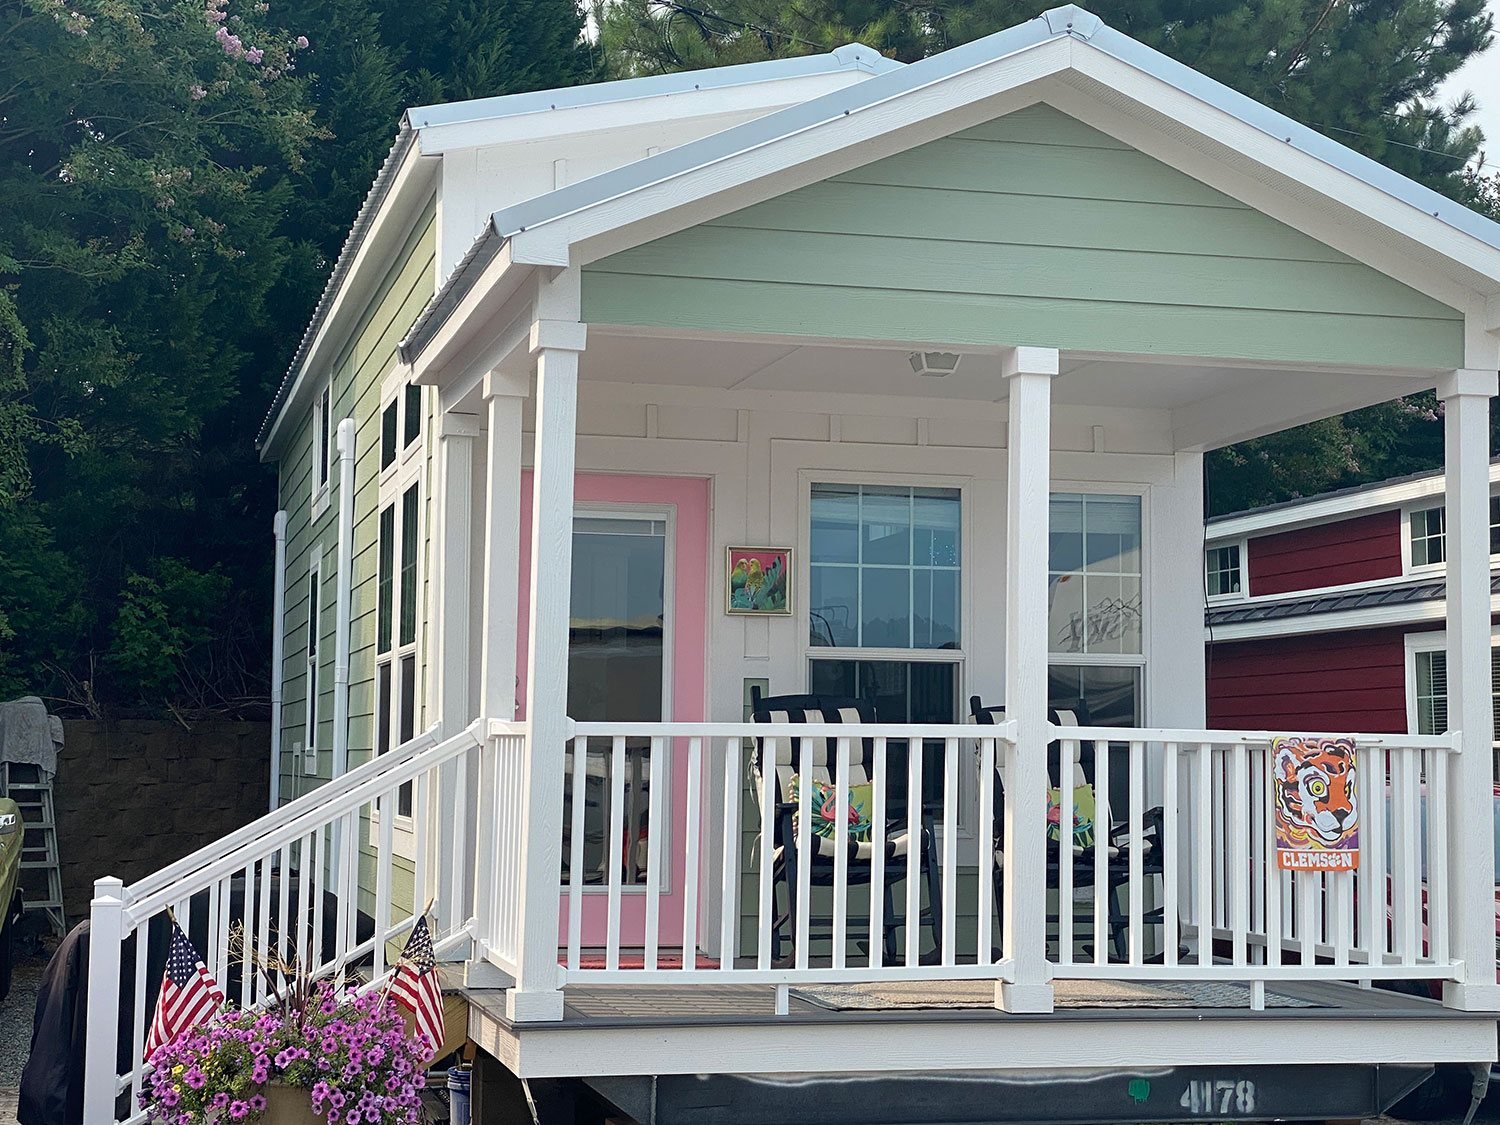 Lakeview - Tiny Home